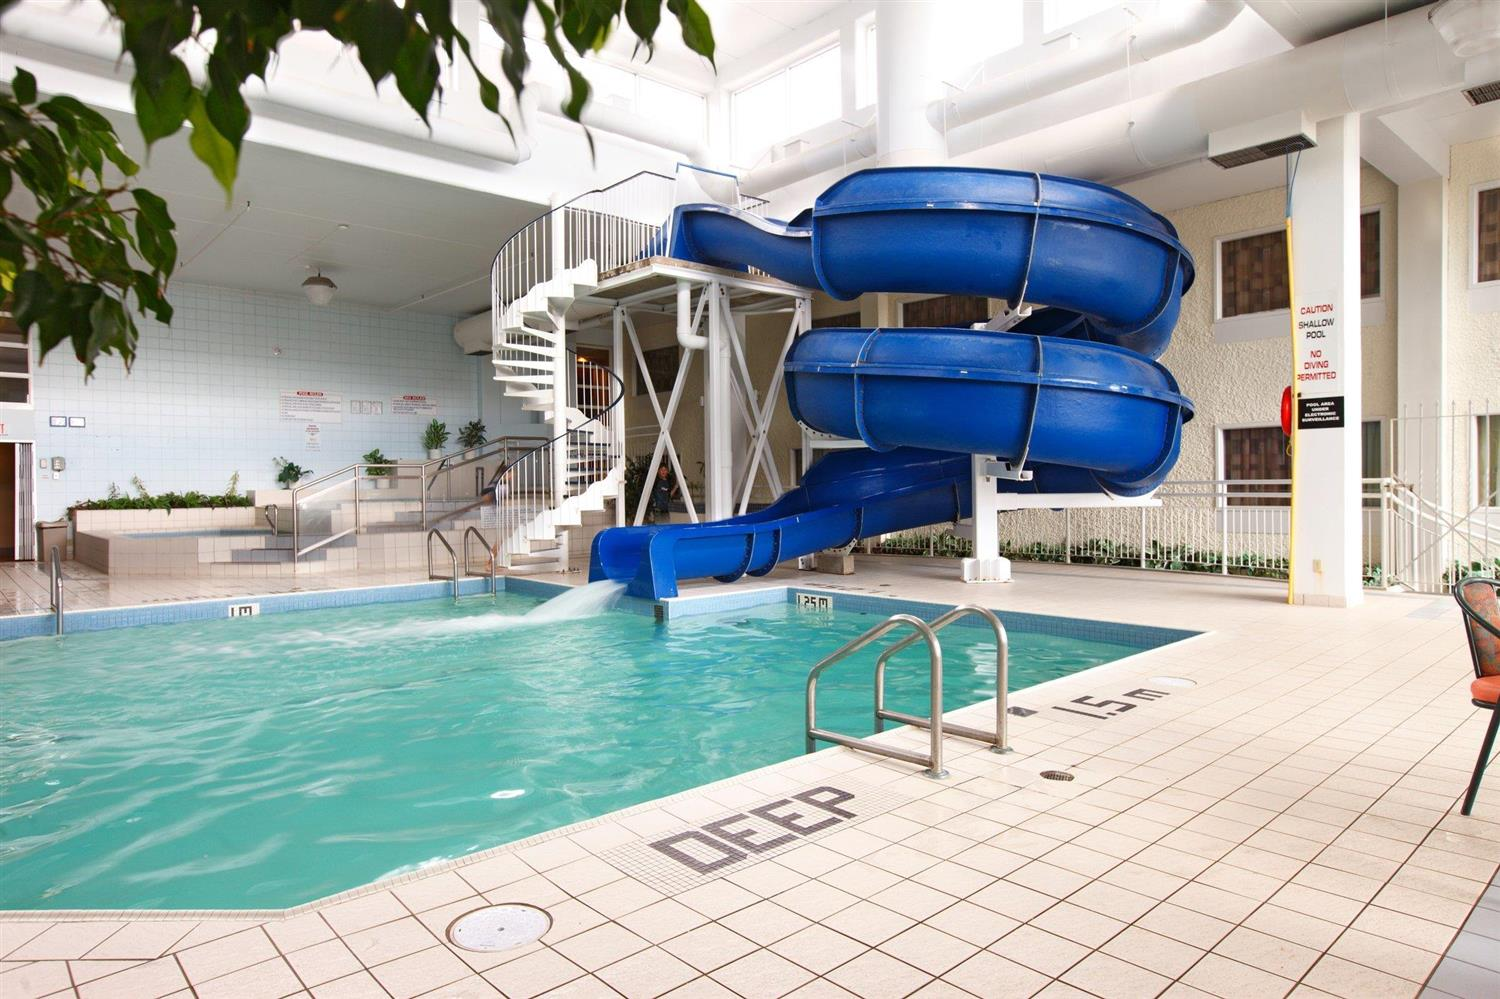 Pool - Viscount Gort Hotel Winnipeg